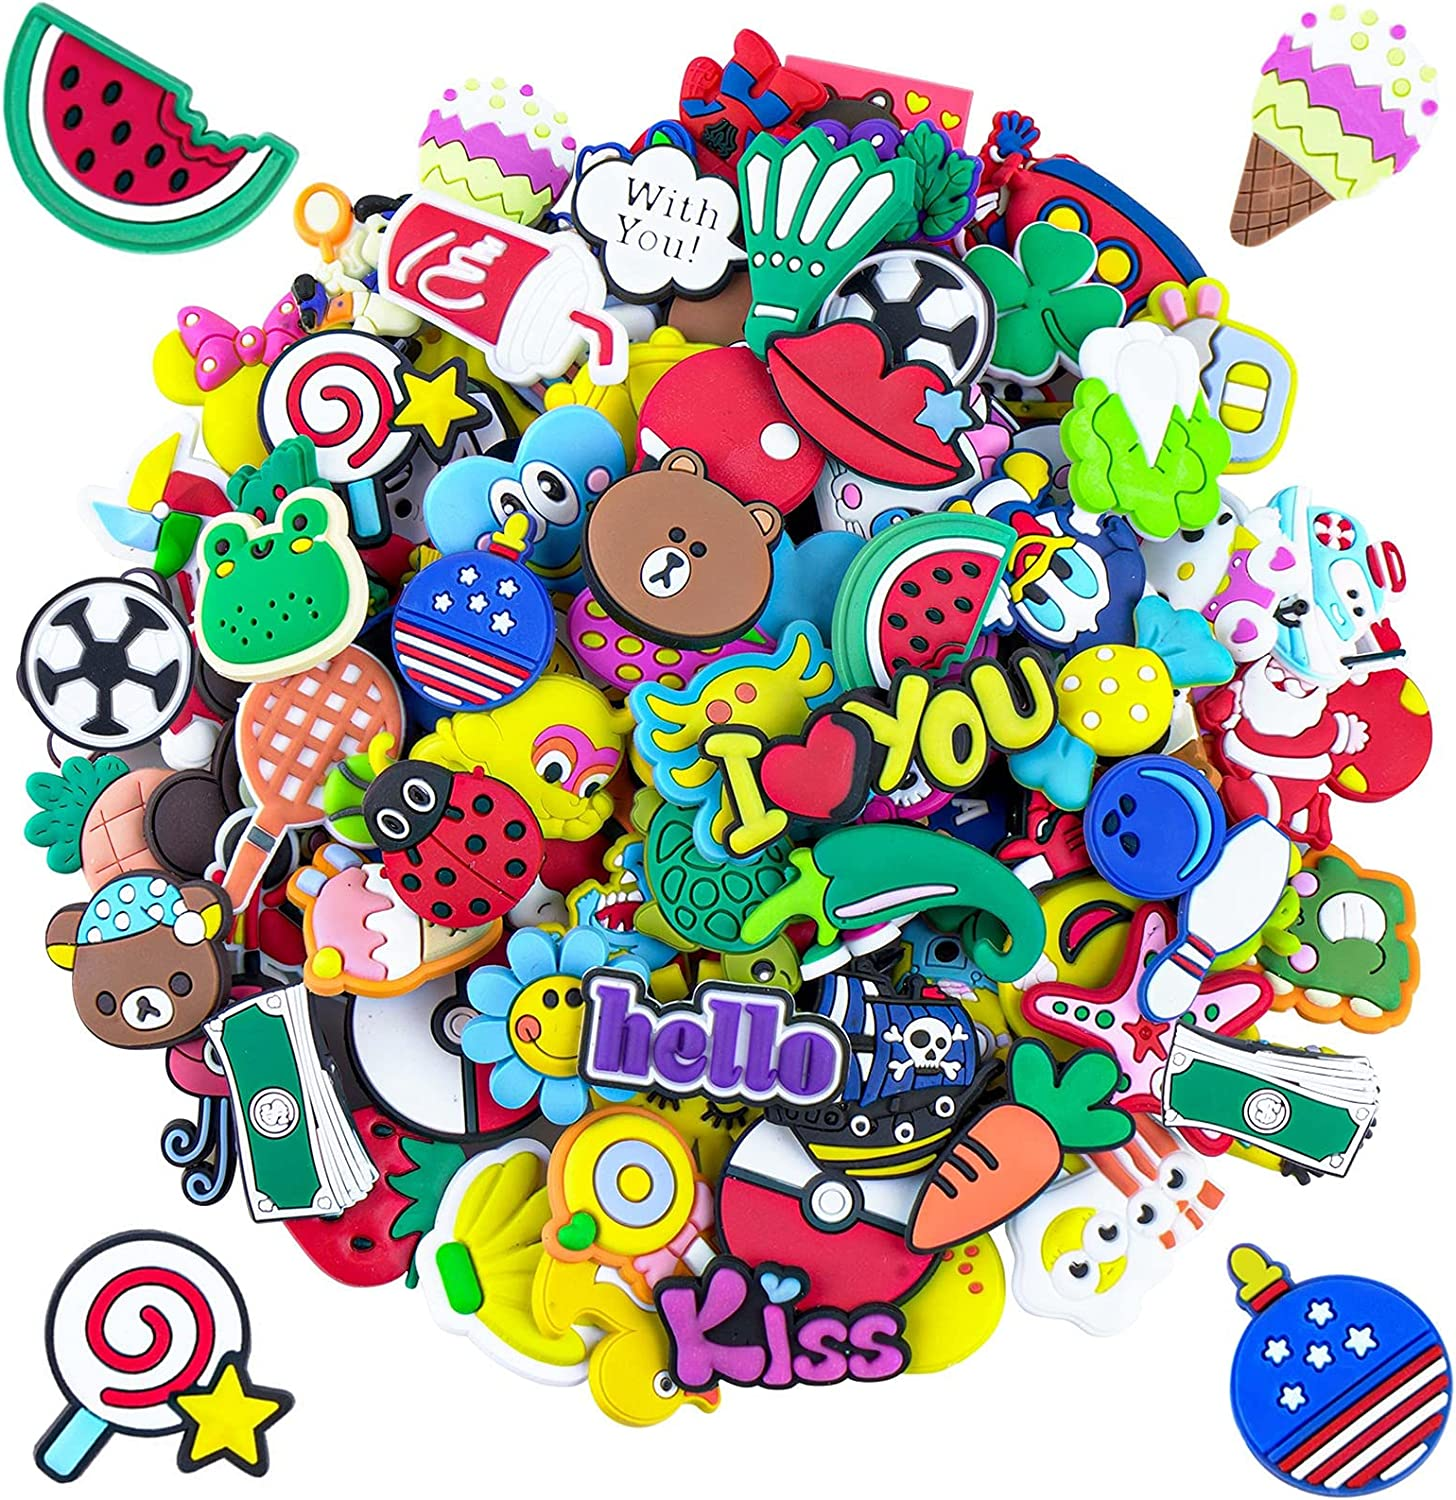 100pcs Different Shoe Charms for Clog Shoe,Wristband Bracelet Decoration /& Charms Party Gift for Kids and Teens Girls